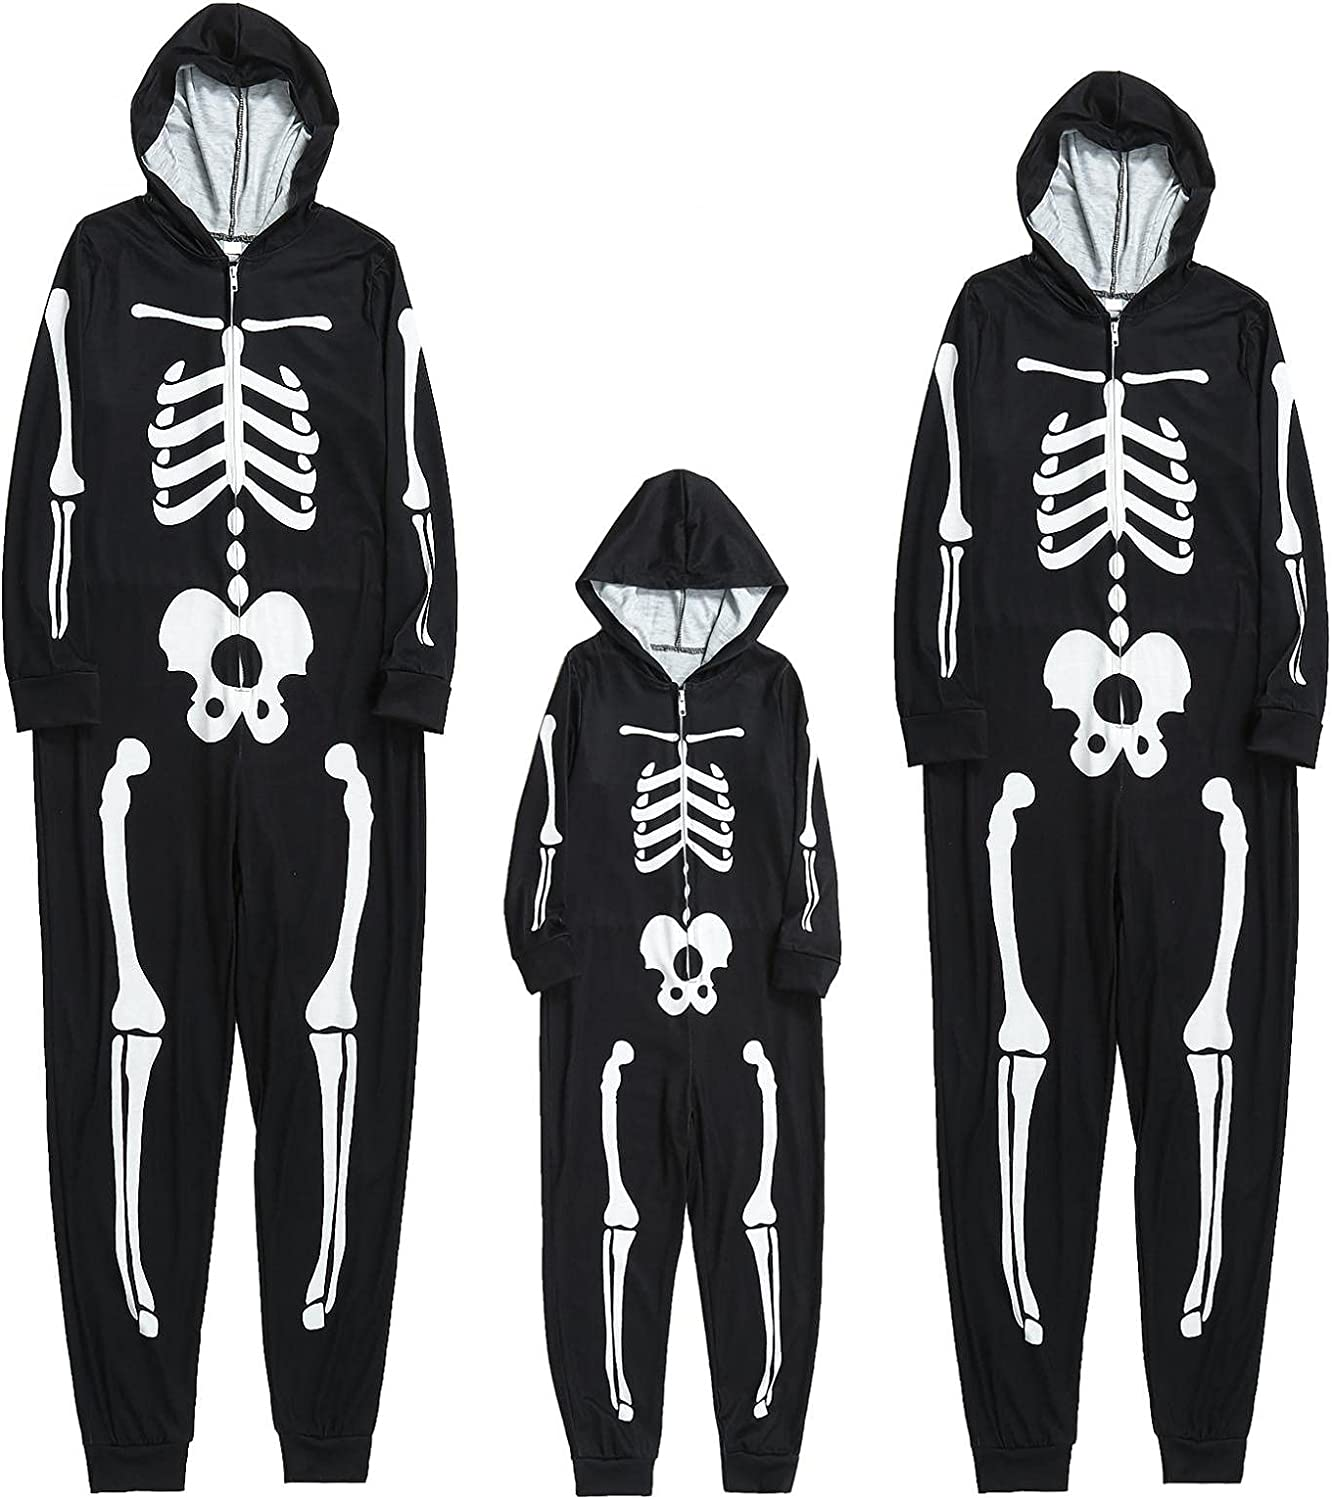 Matching Family Pajamas Sets Holiday Hoodie New Shipping High quality new Free Halloween One-Piece